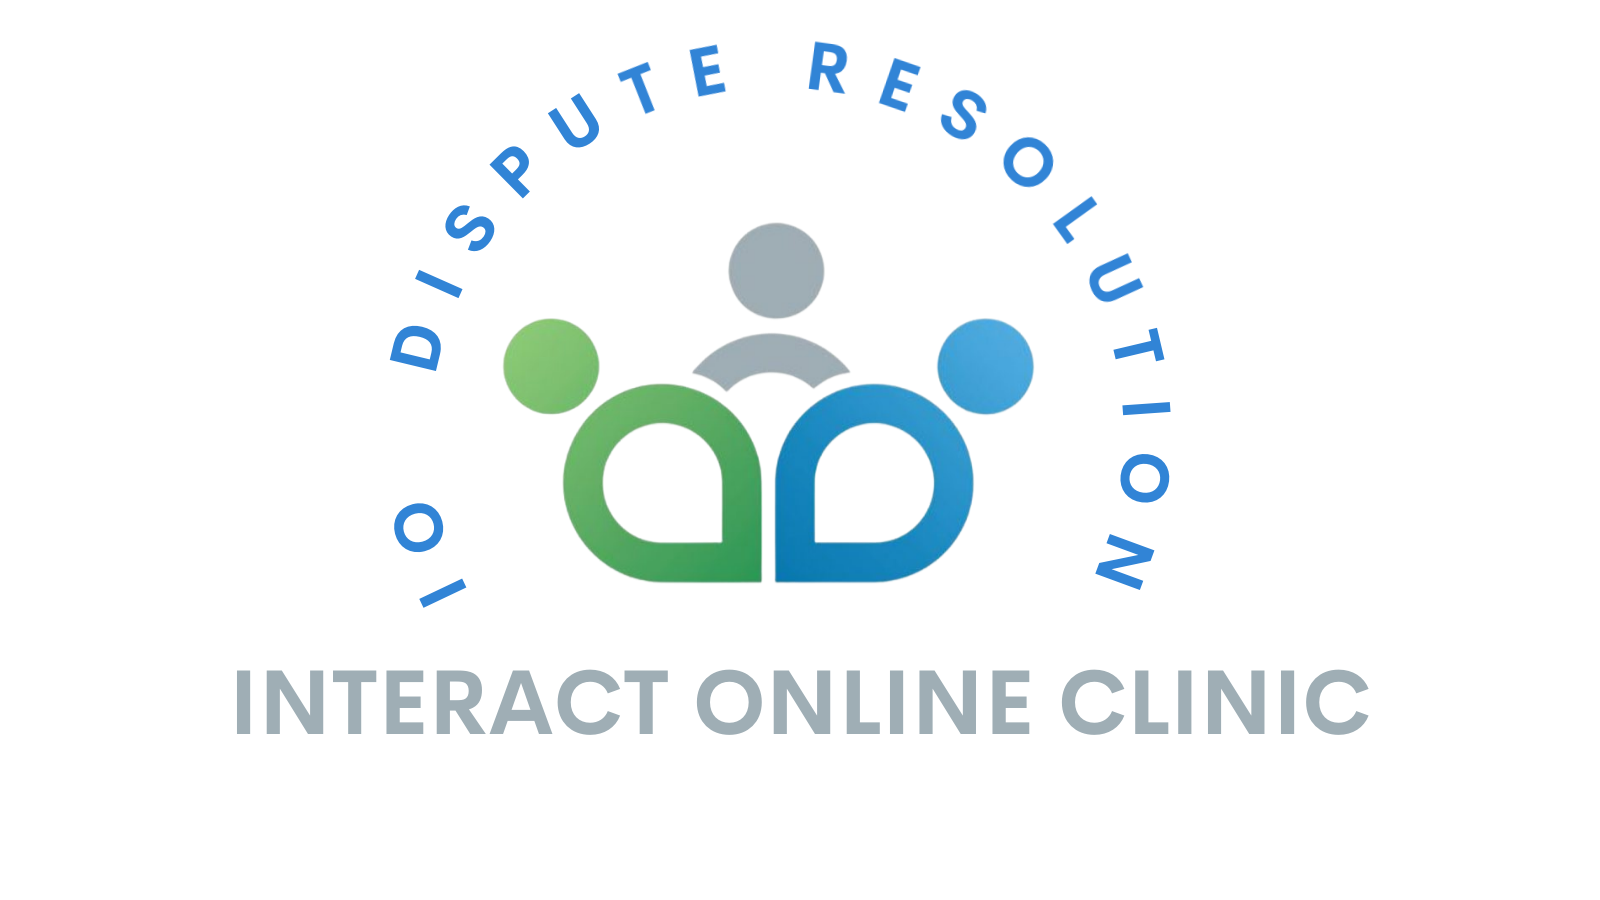 Interact Online Clinic